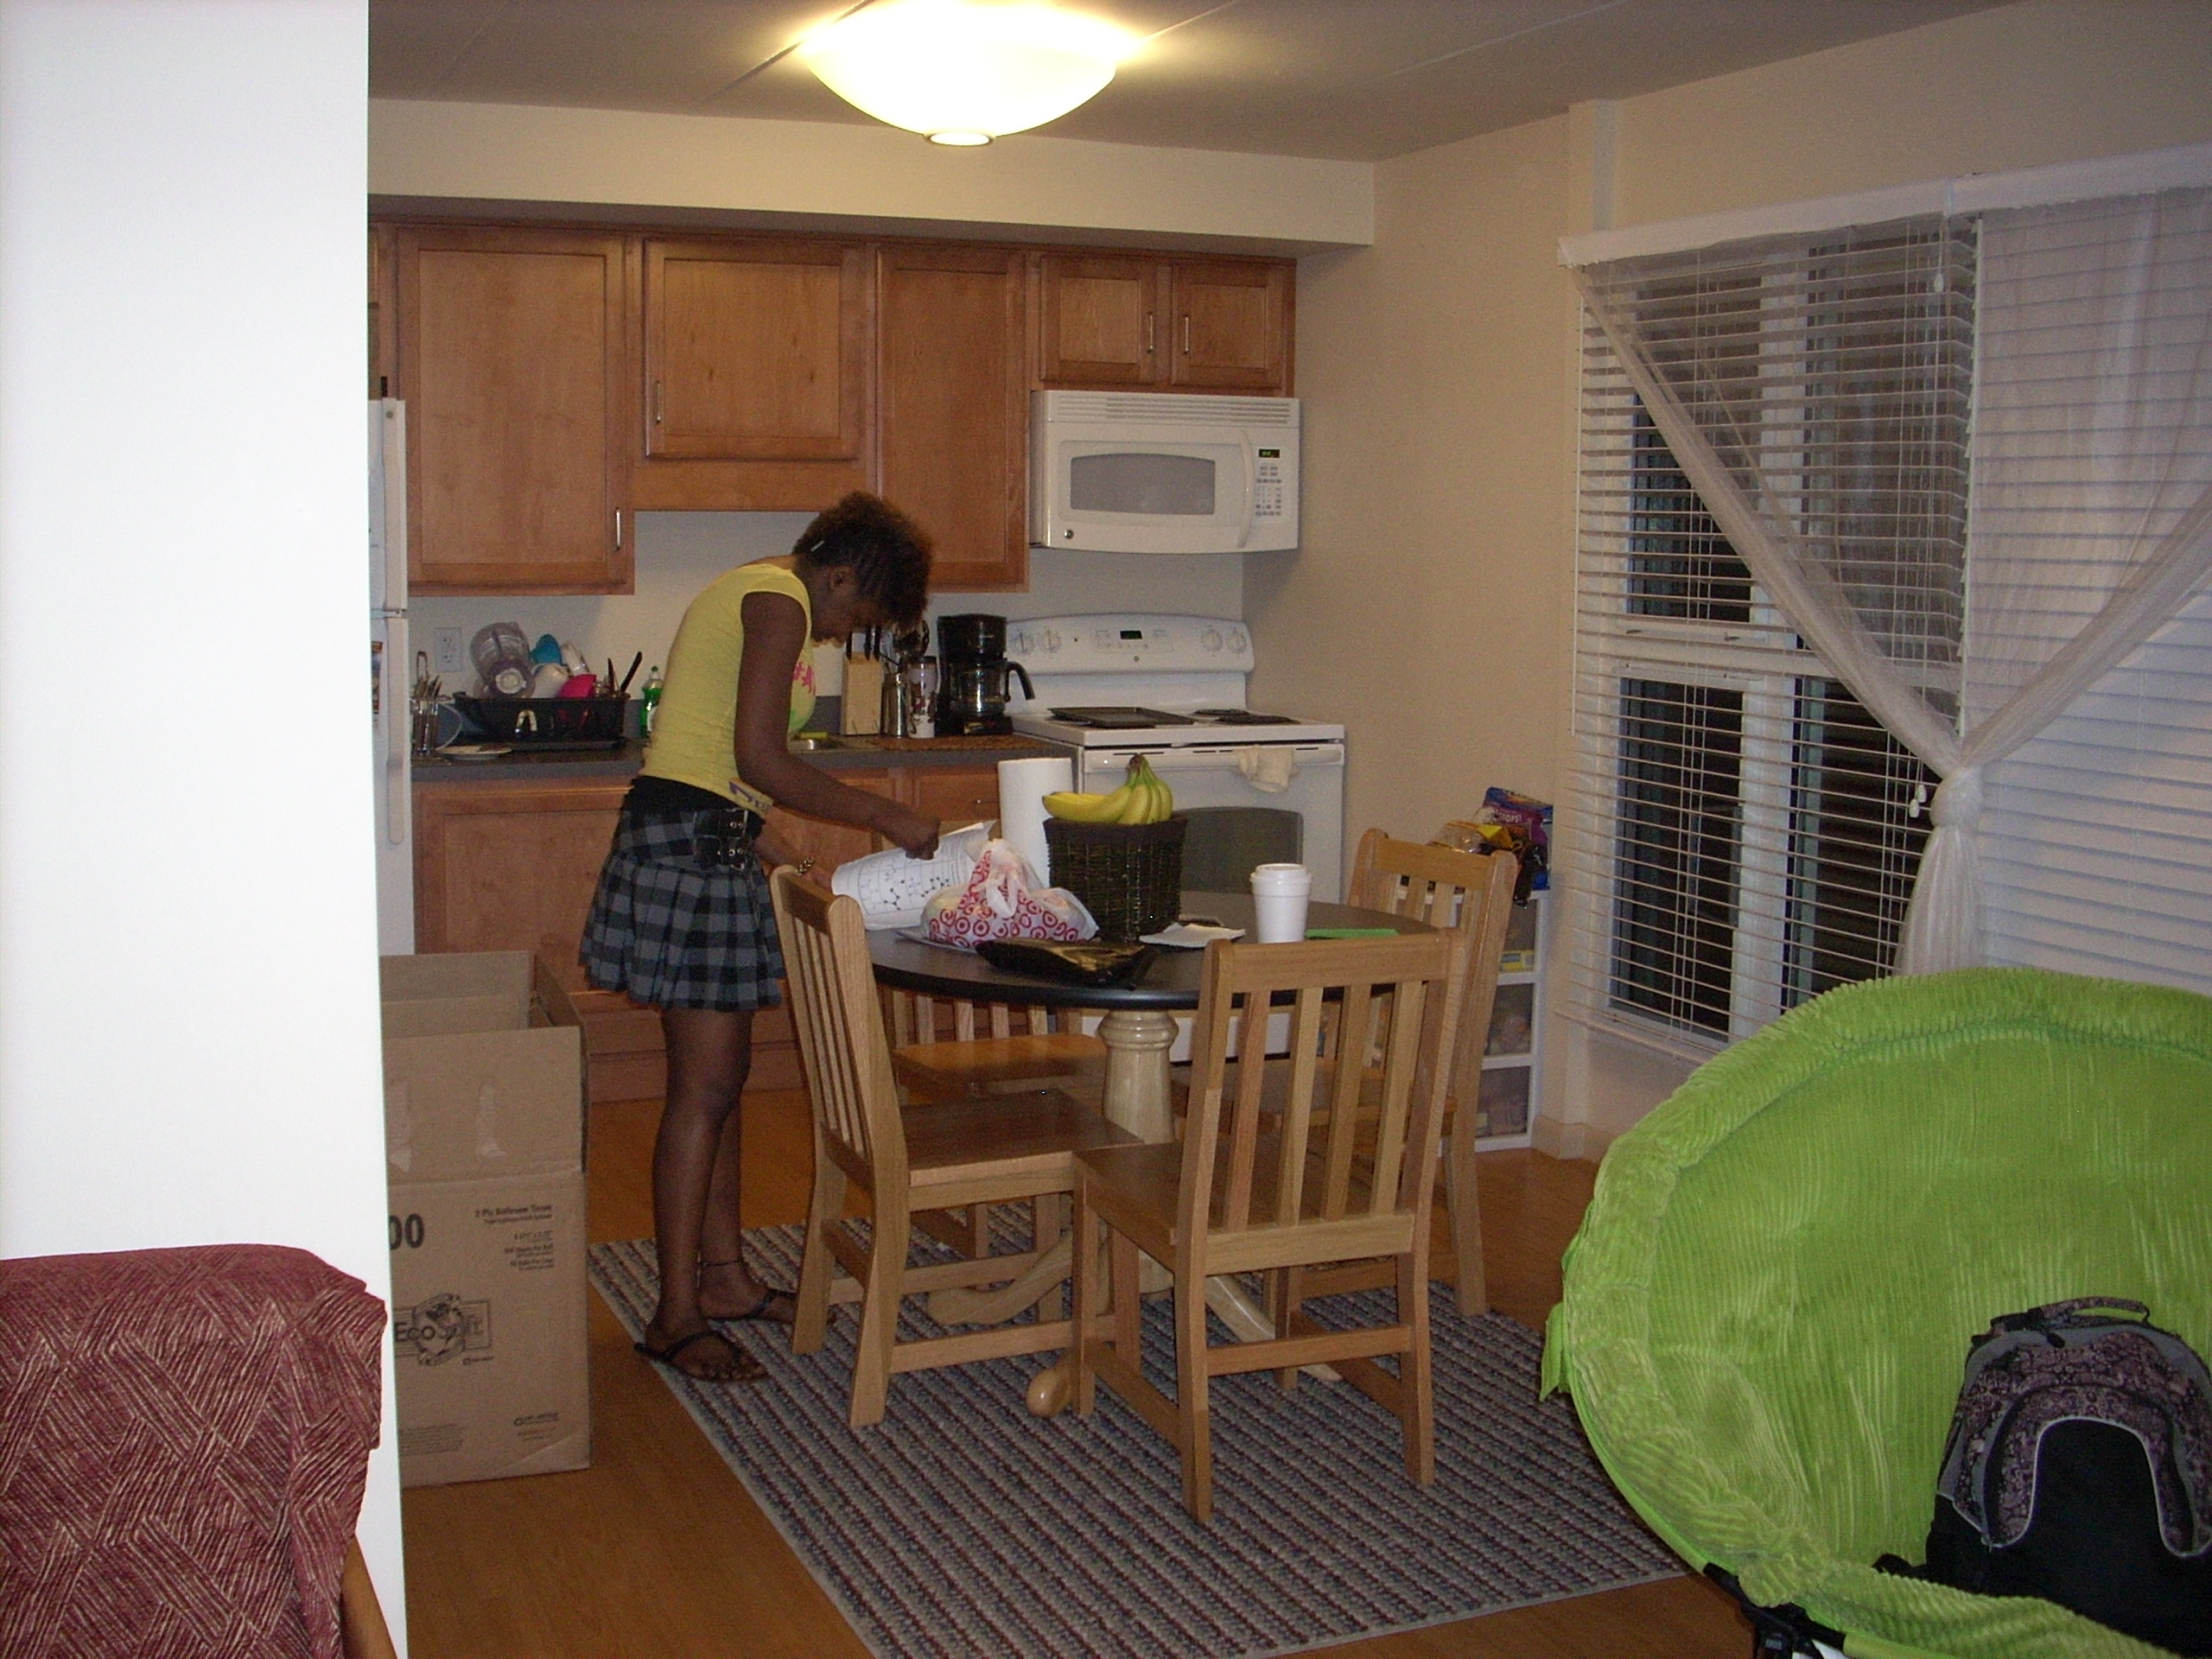 Mcdaniel College Office Of Residence Life within Campus Gardens Apartments